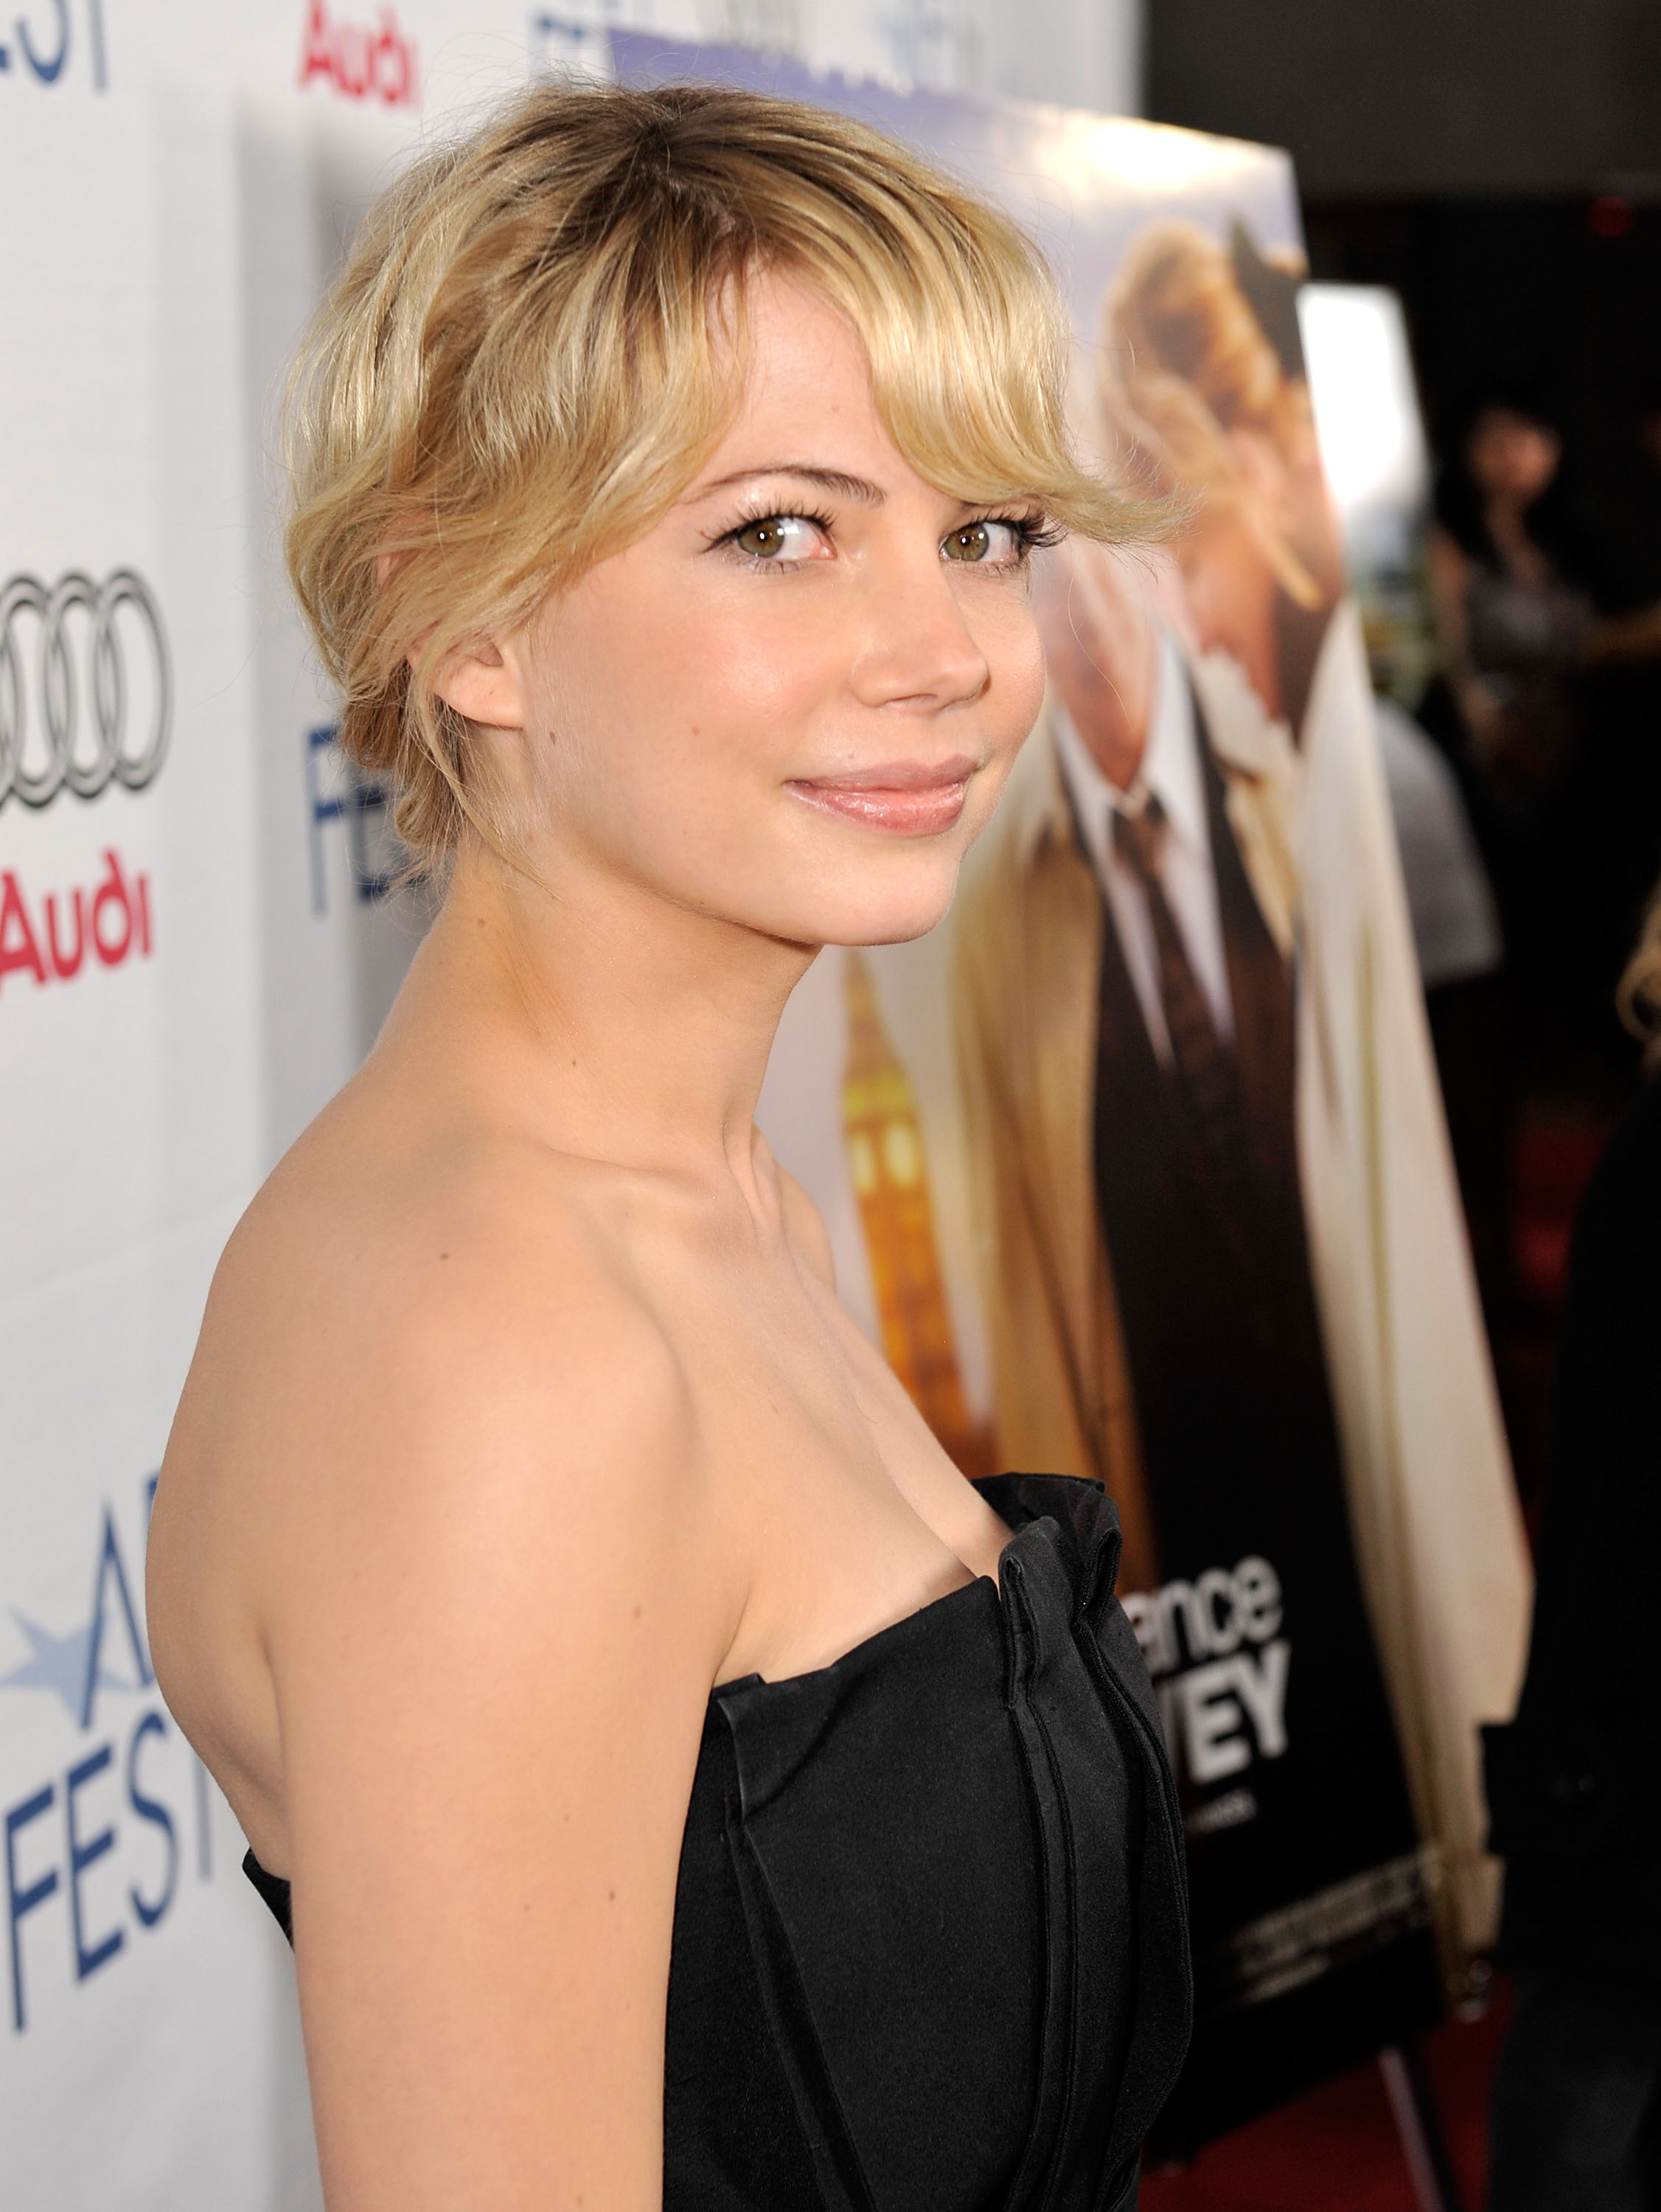 Michelle Williams Actress Photo 144 Of 402 Pics